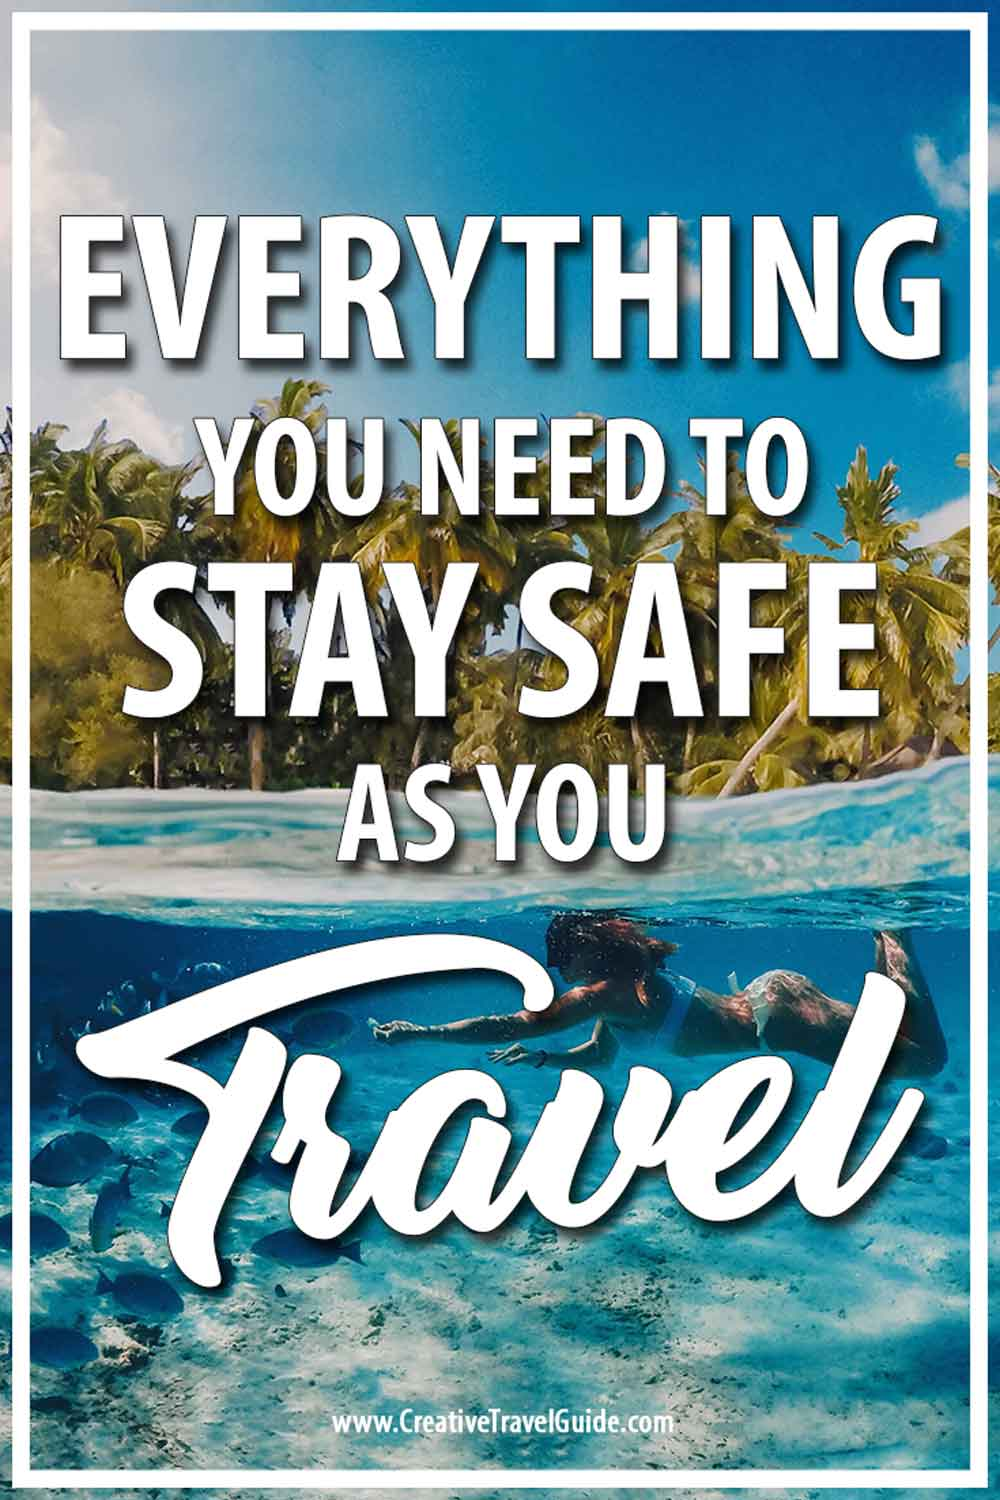 Travel and life insurance